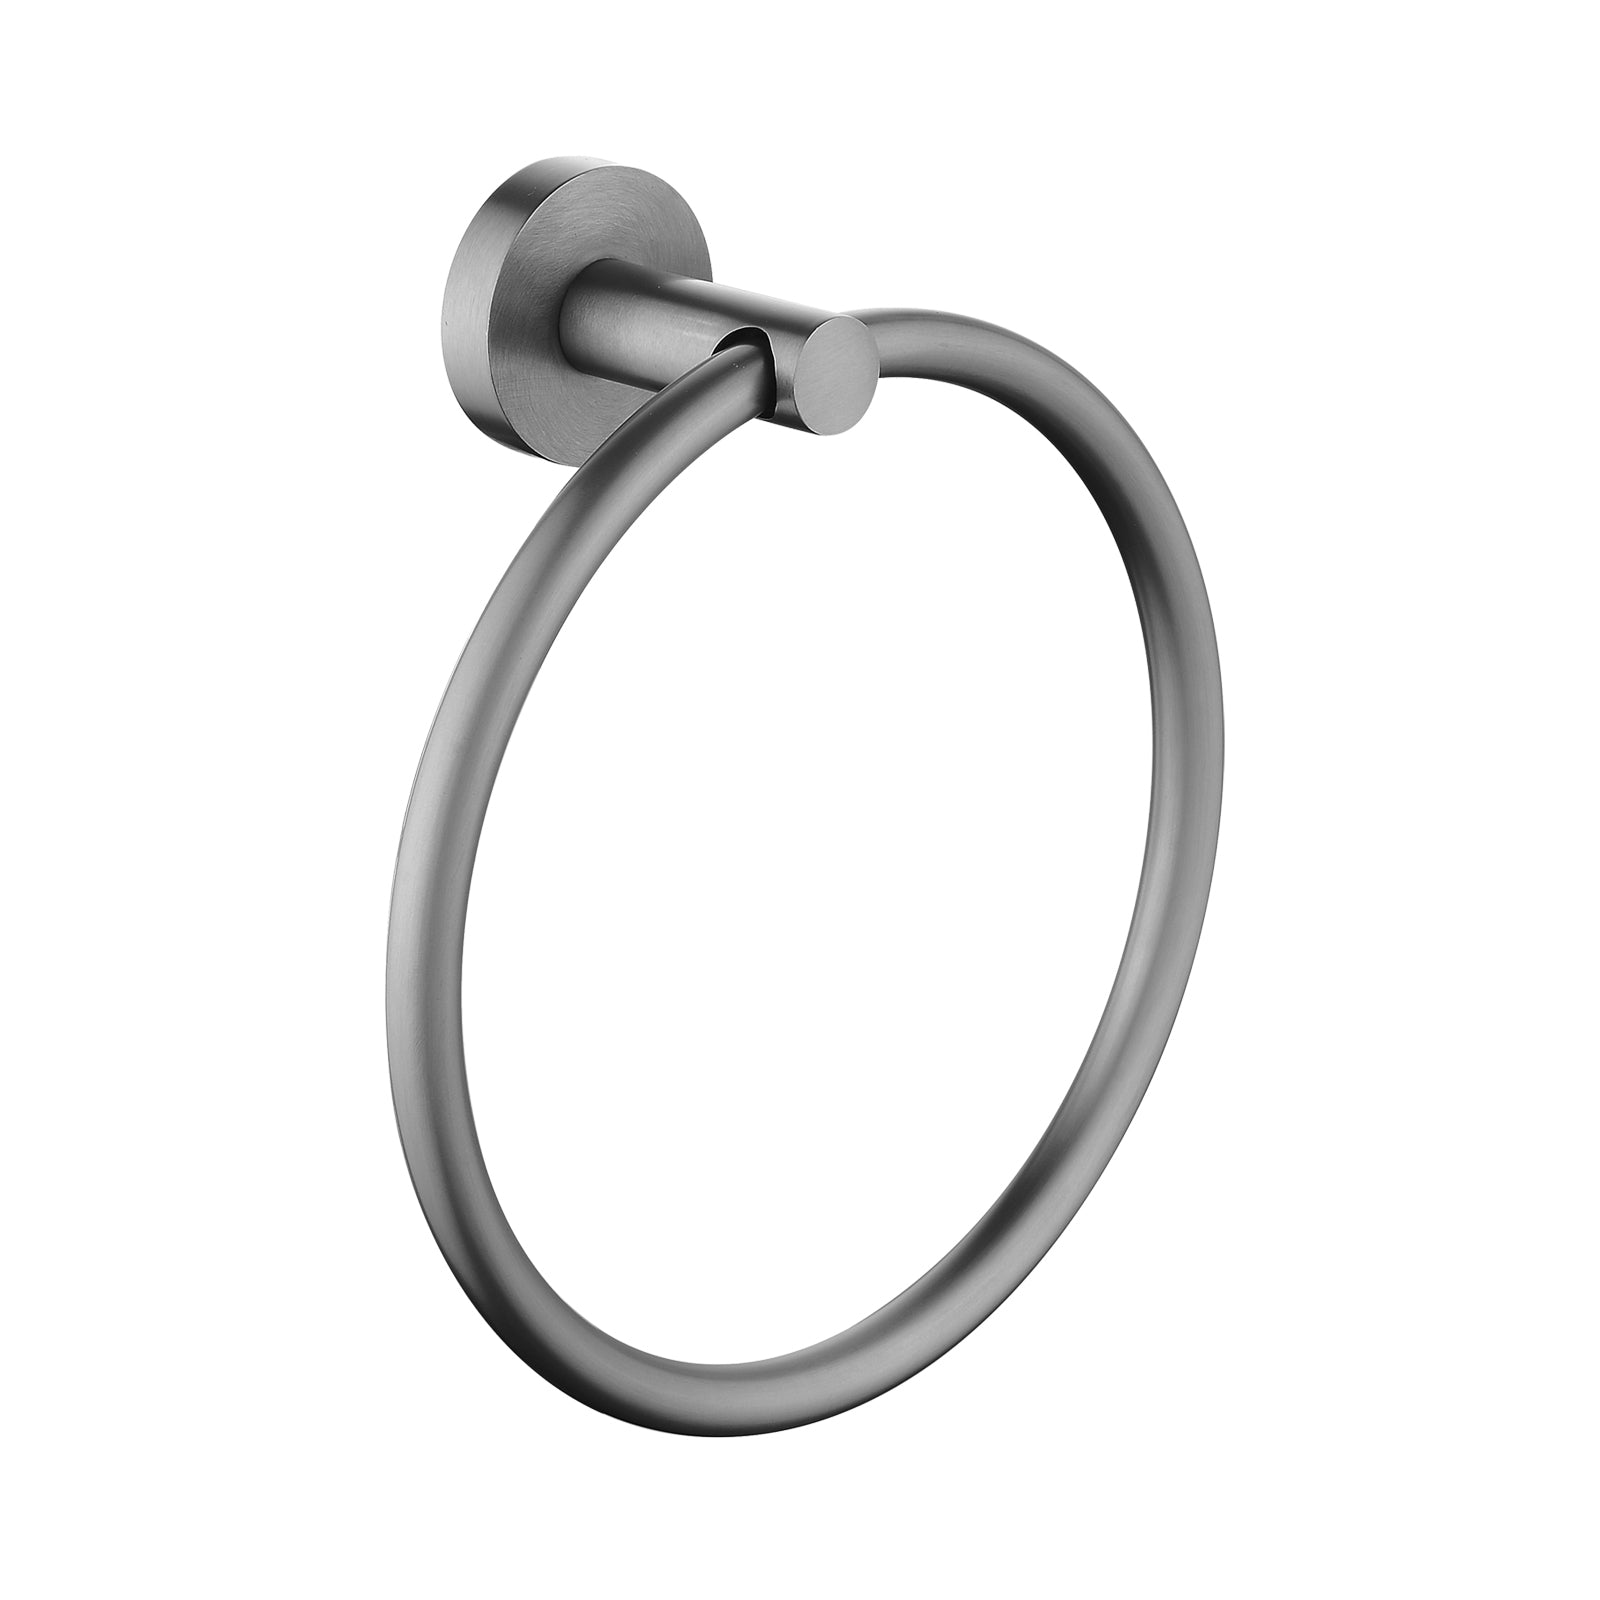 Pentro Gun Metal Grey Round Wall Mounted Round Hand Towel Ring